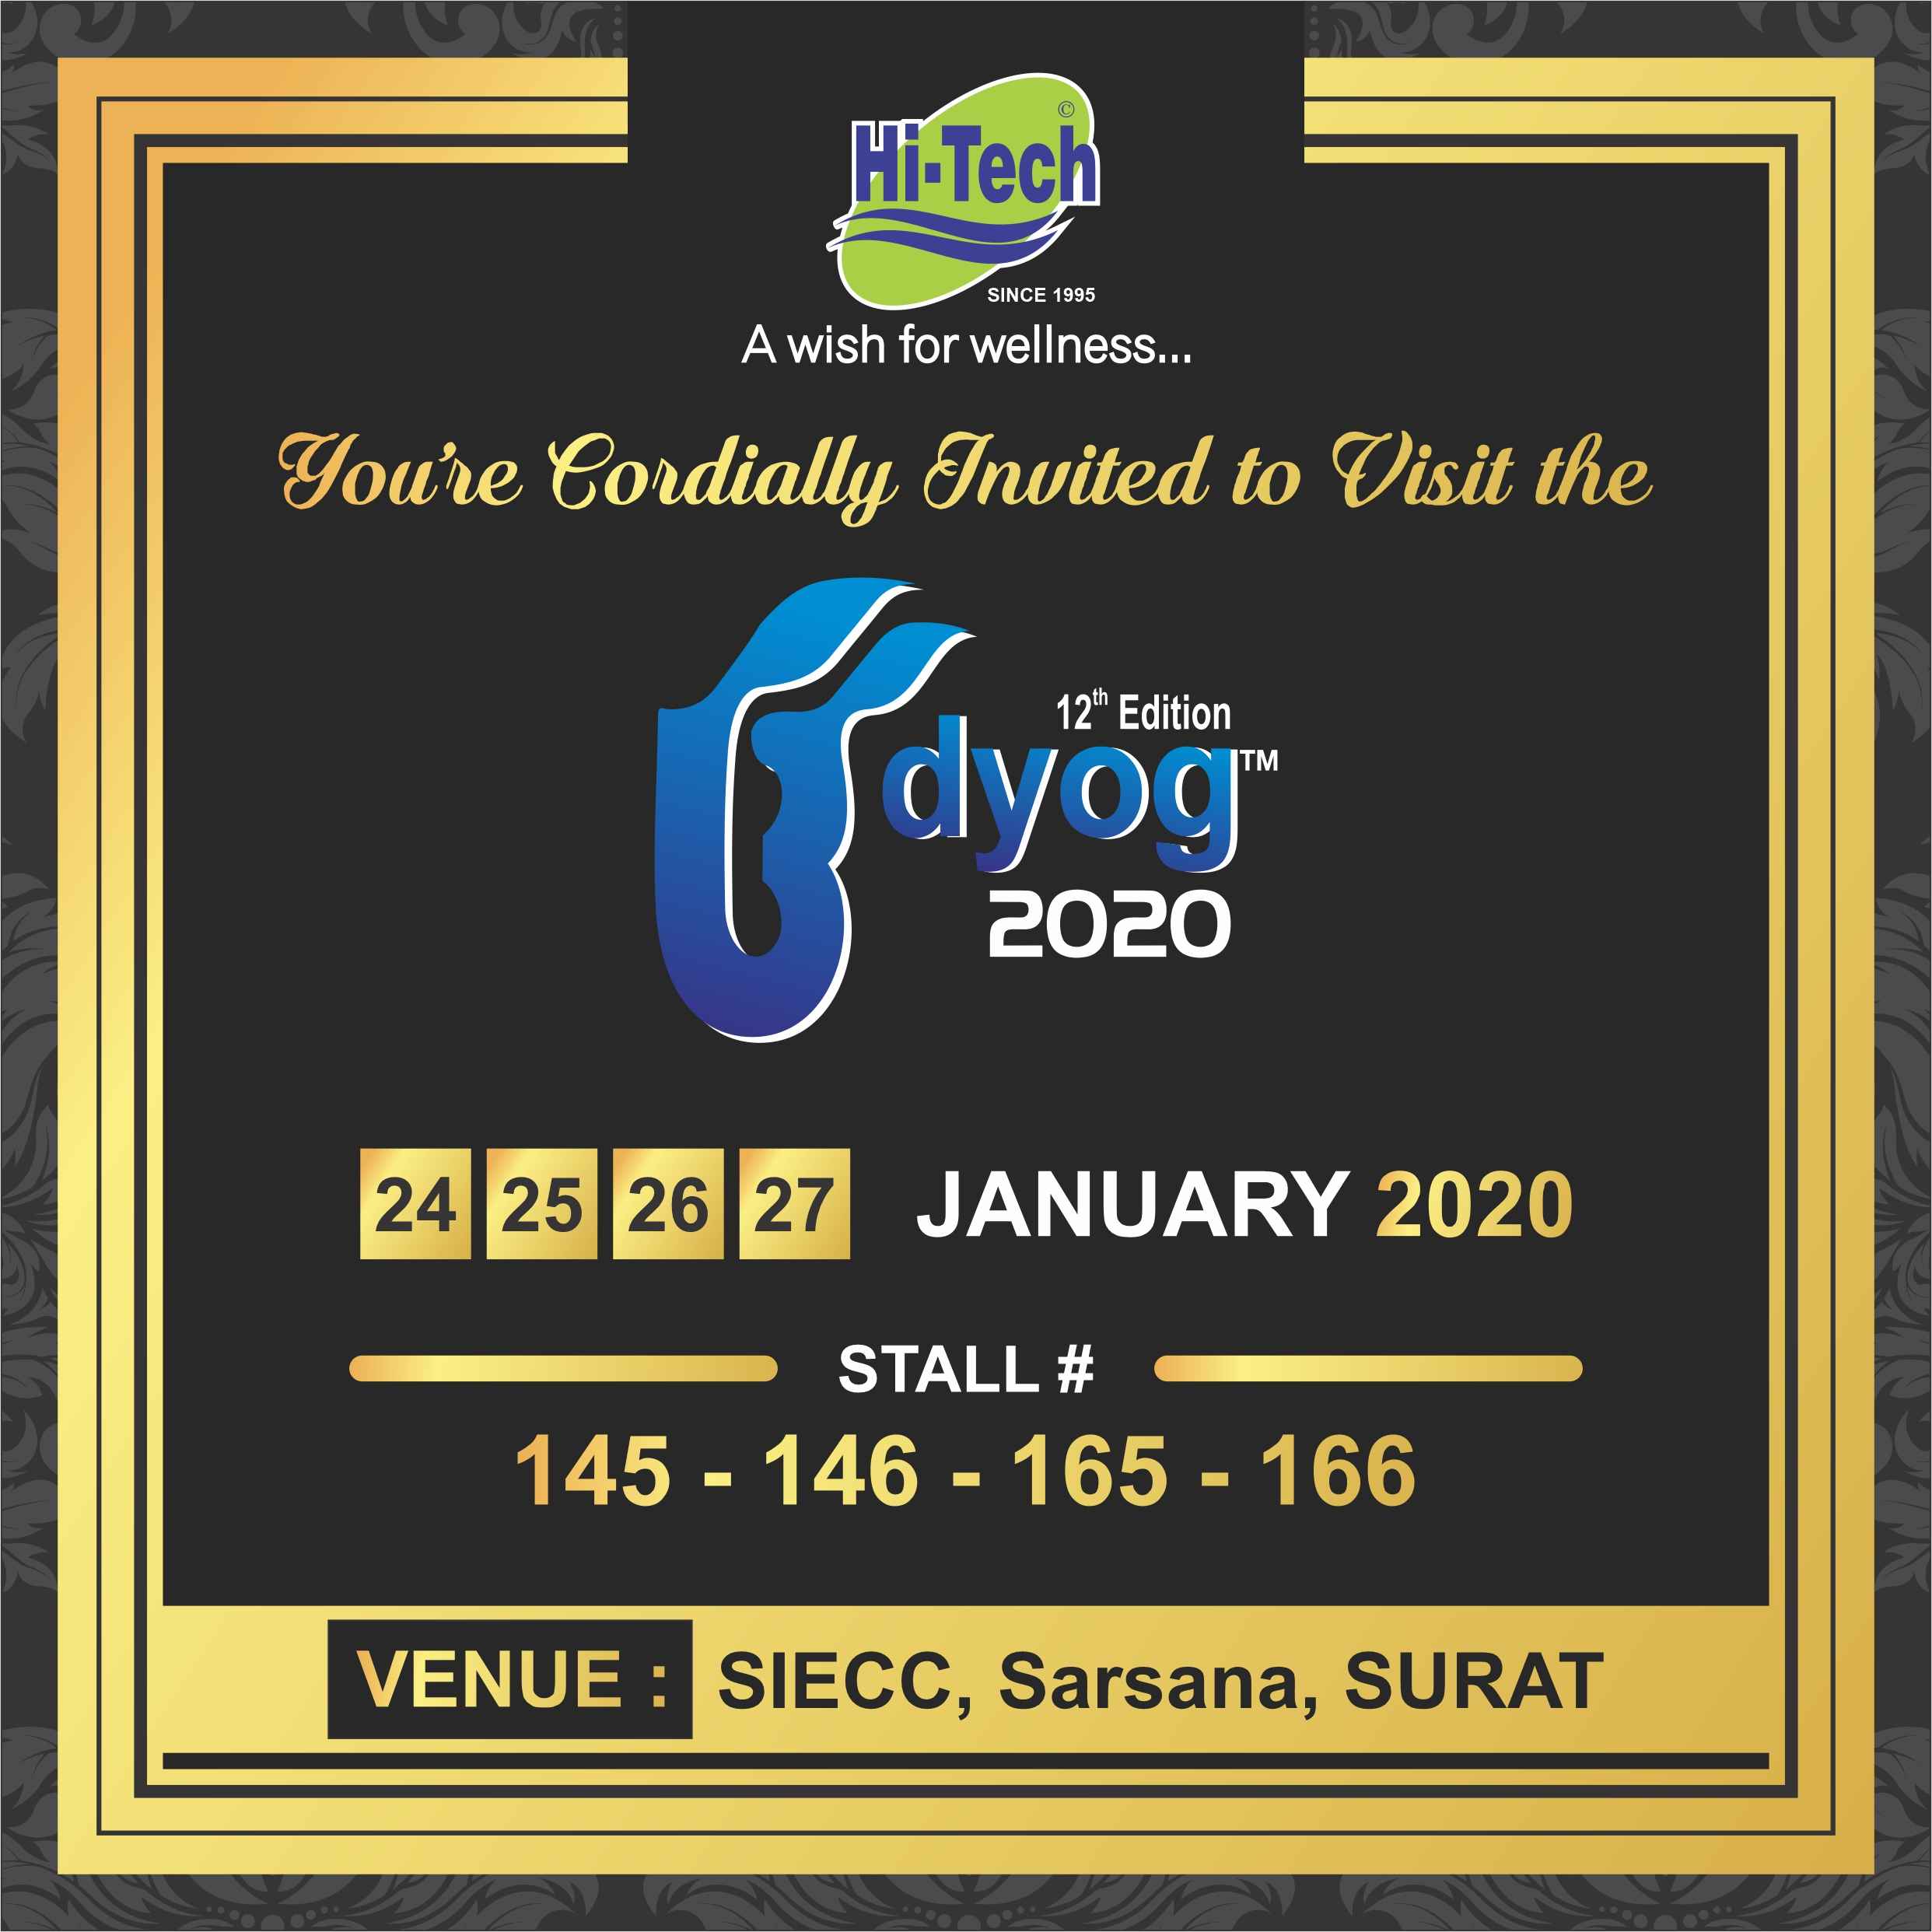 Udyog 12th Edition Exhibition Surat